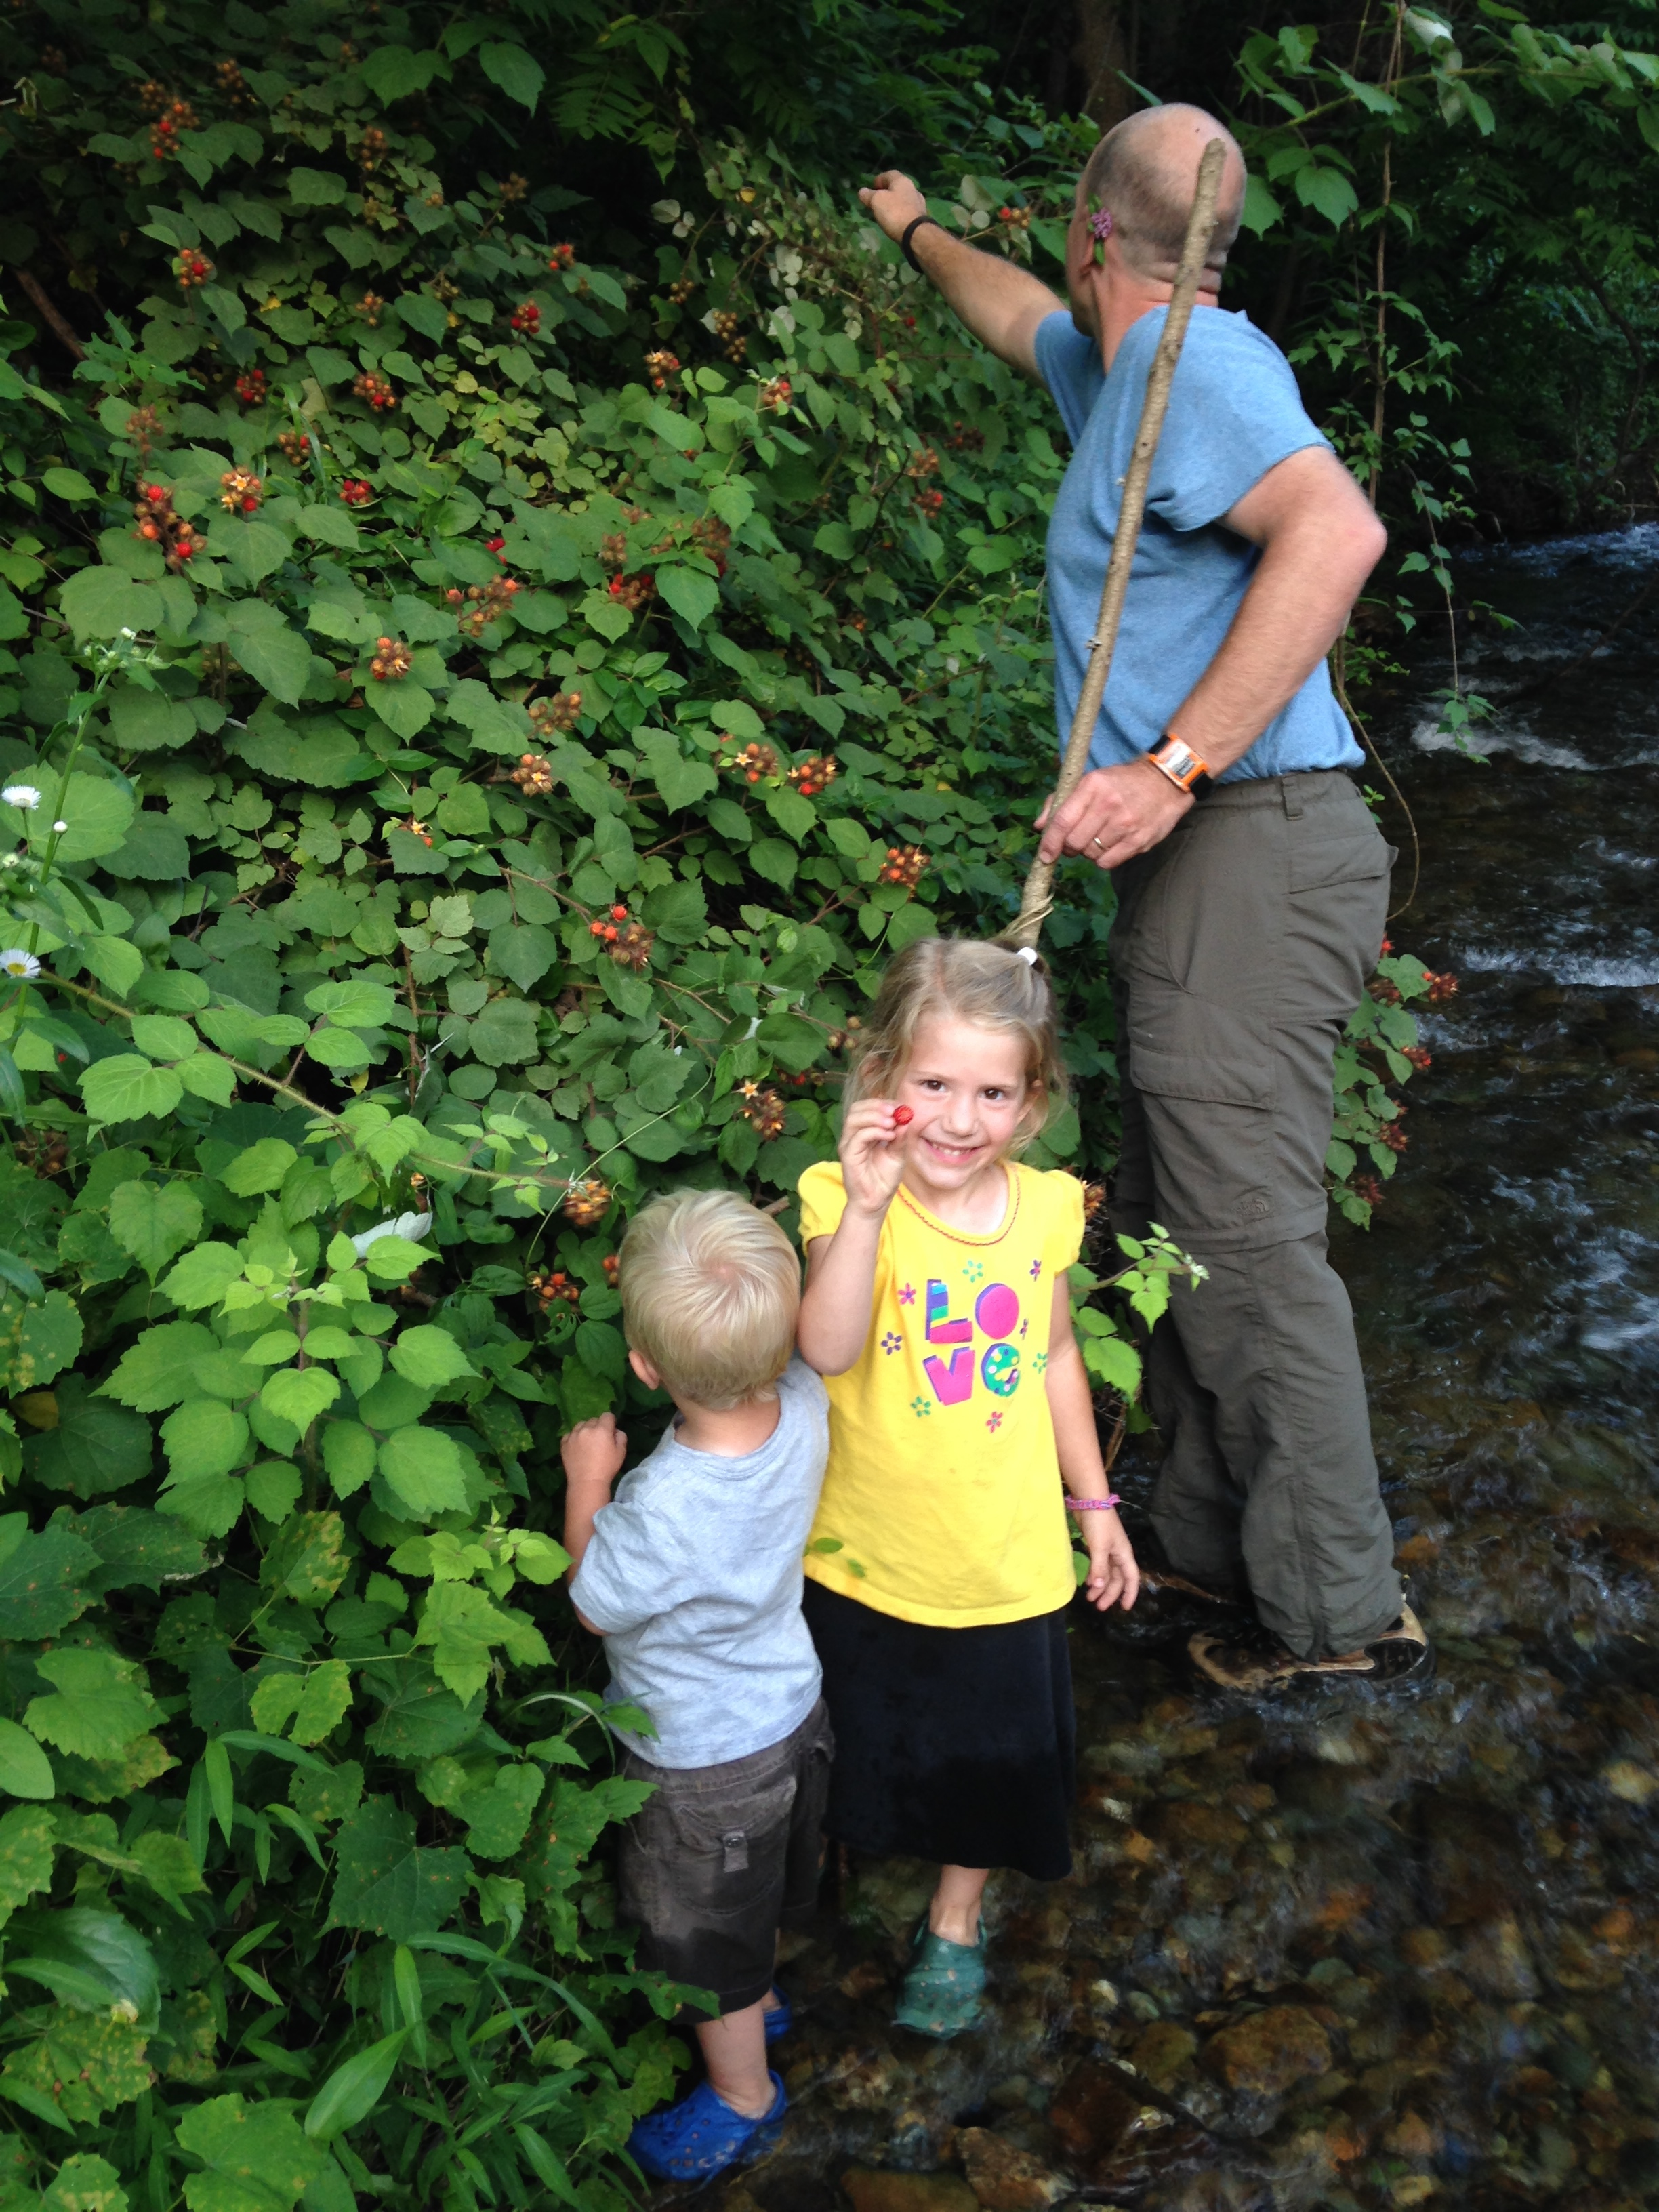 Picking Raspberries while wading in the water.